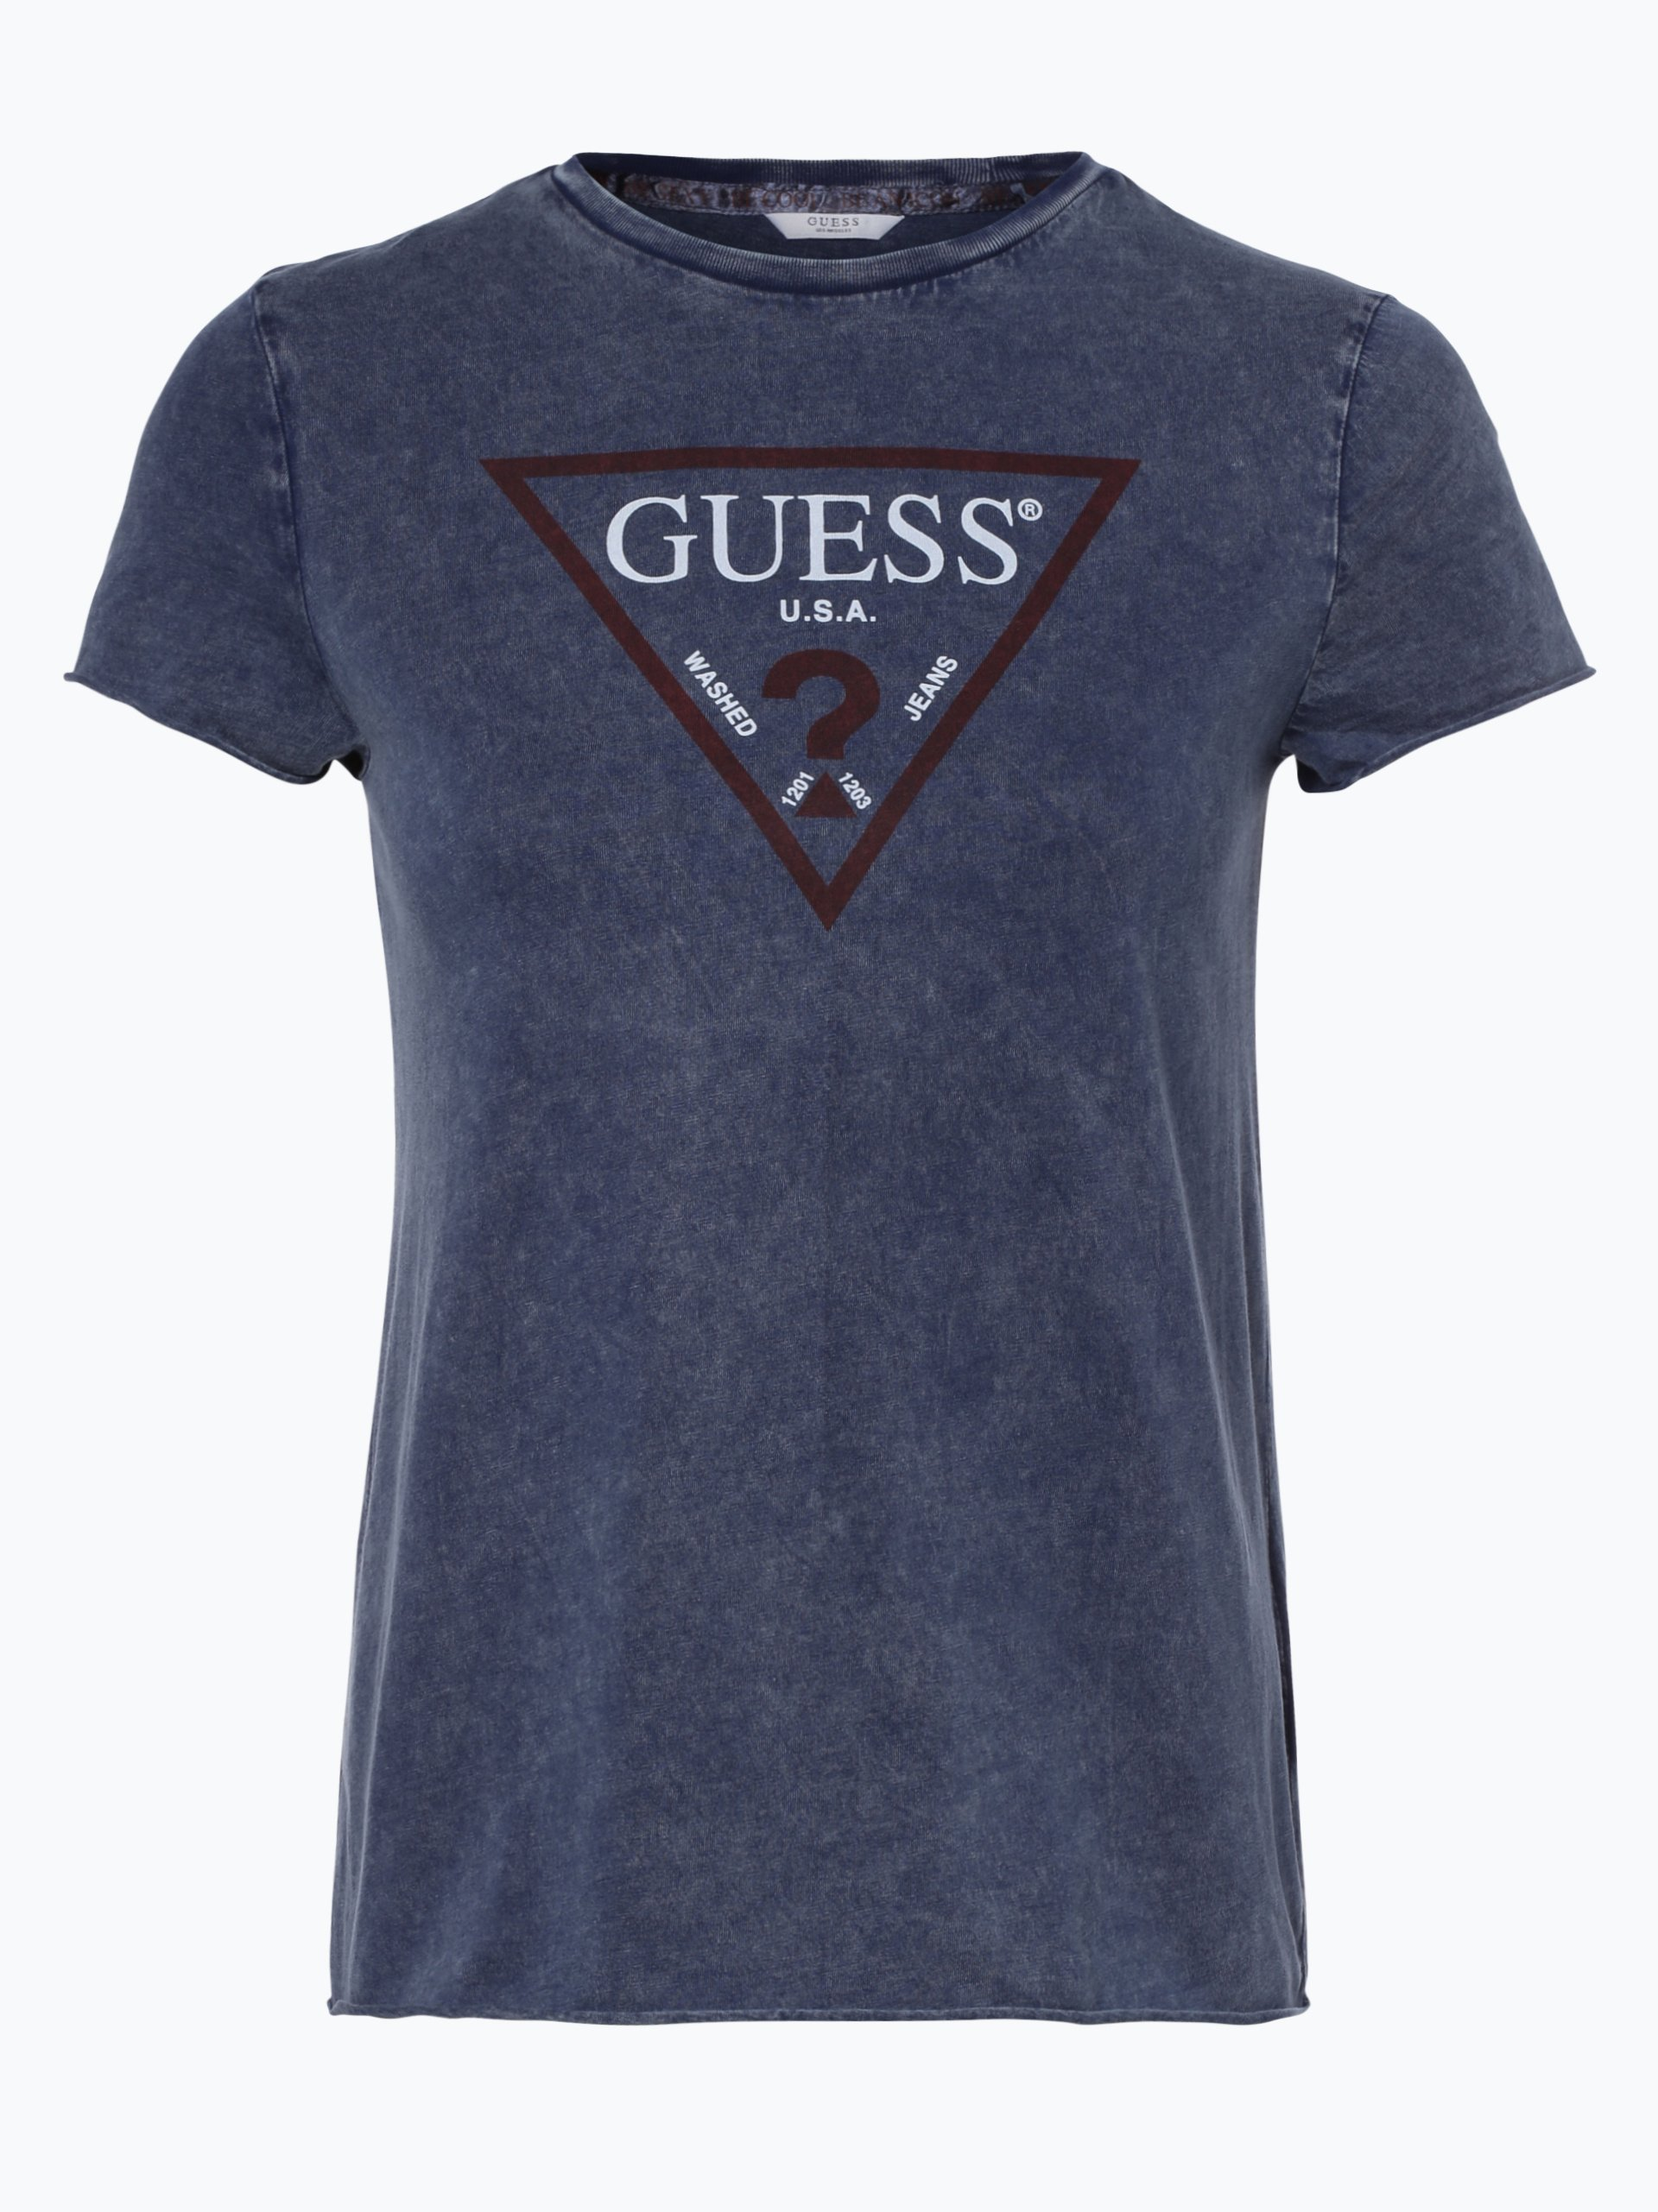 guess jeans damen t shirt marine gemustert online kaufen. Black Bedroom Furniture Sets. Home Design Ideas